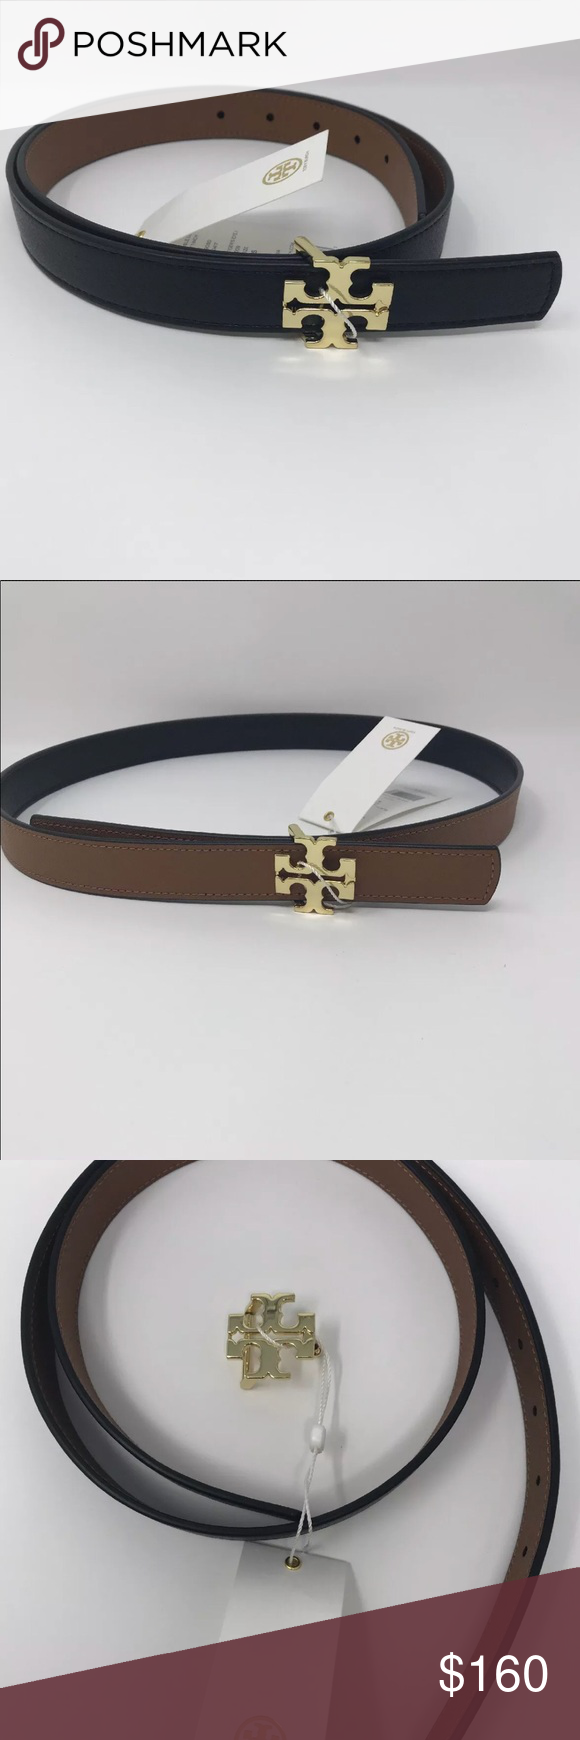 08645d908d81 Tory Burch belt size S Leather belt Reversible logo black  brown 1 inch  wide - 100% Authentic Color  Tiger s Eye Black  brown Tory Burch Other